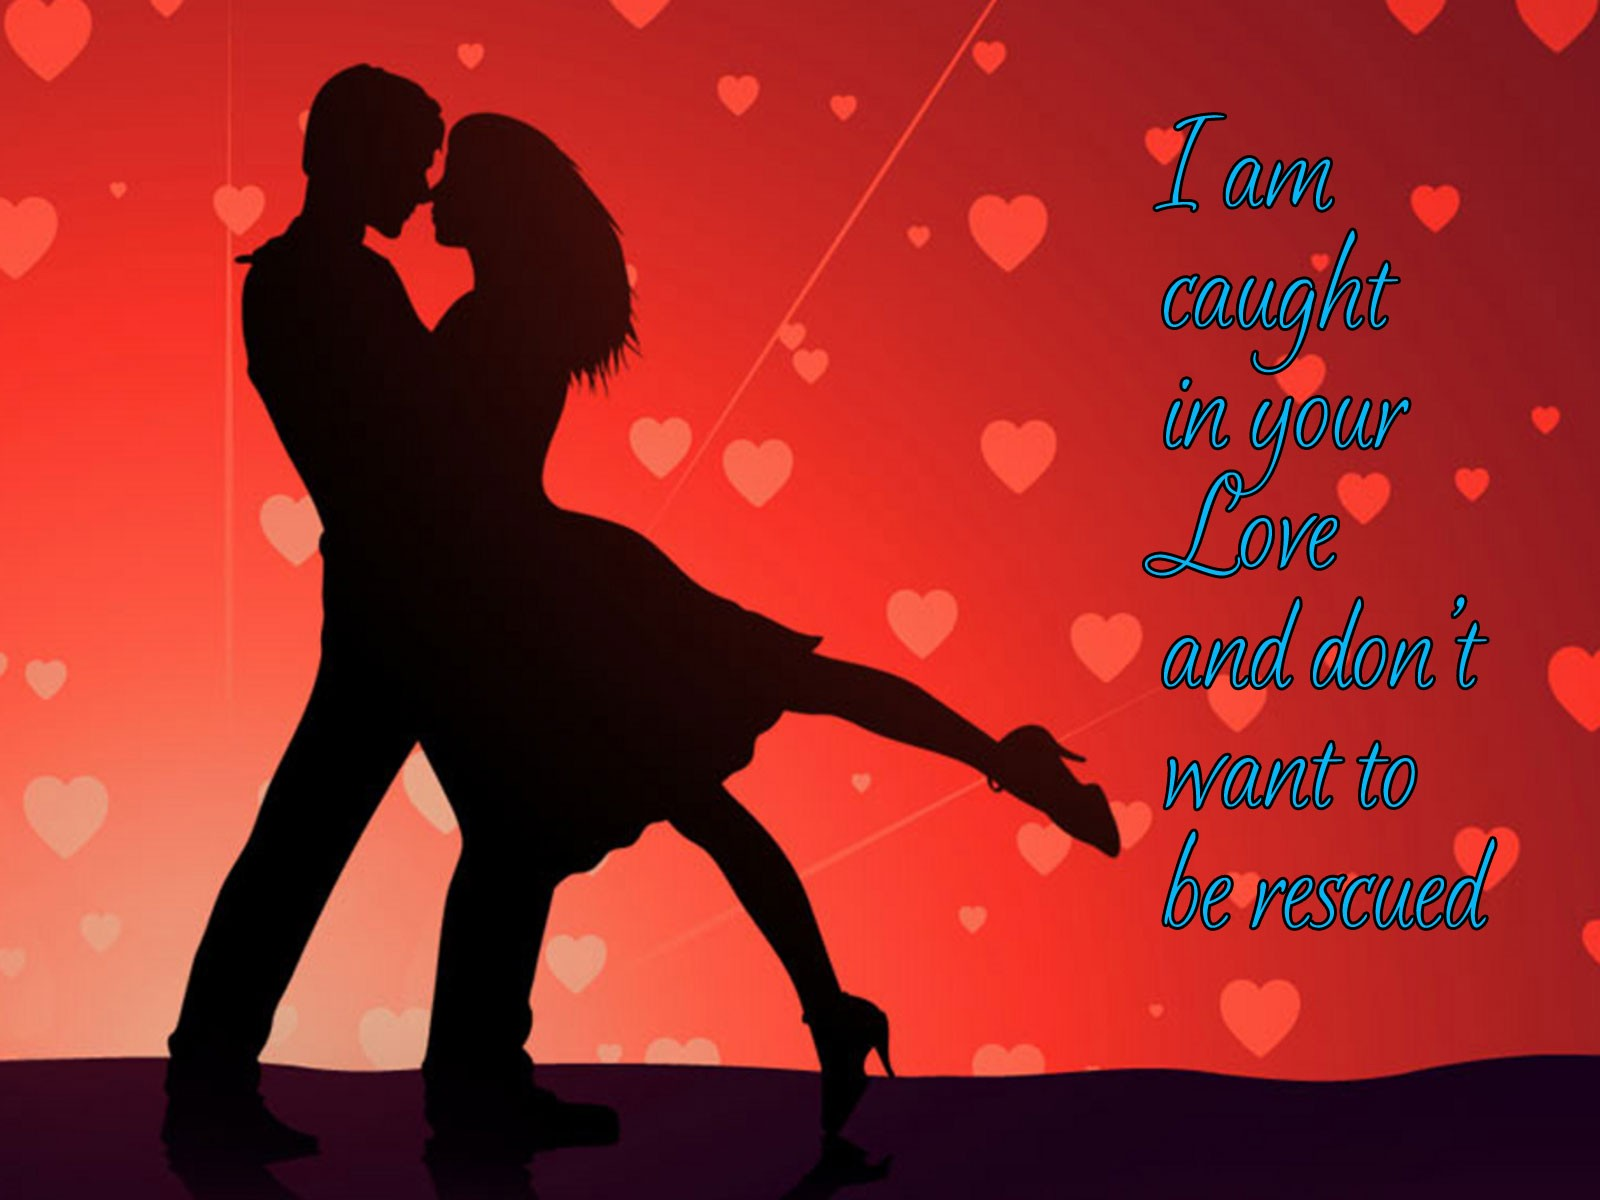 Love couple Hd Wallpaper With Quotes : Love Wallpapers Archives - Page 2 of 16 - HD Desktop Wallpapers 4k HD